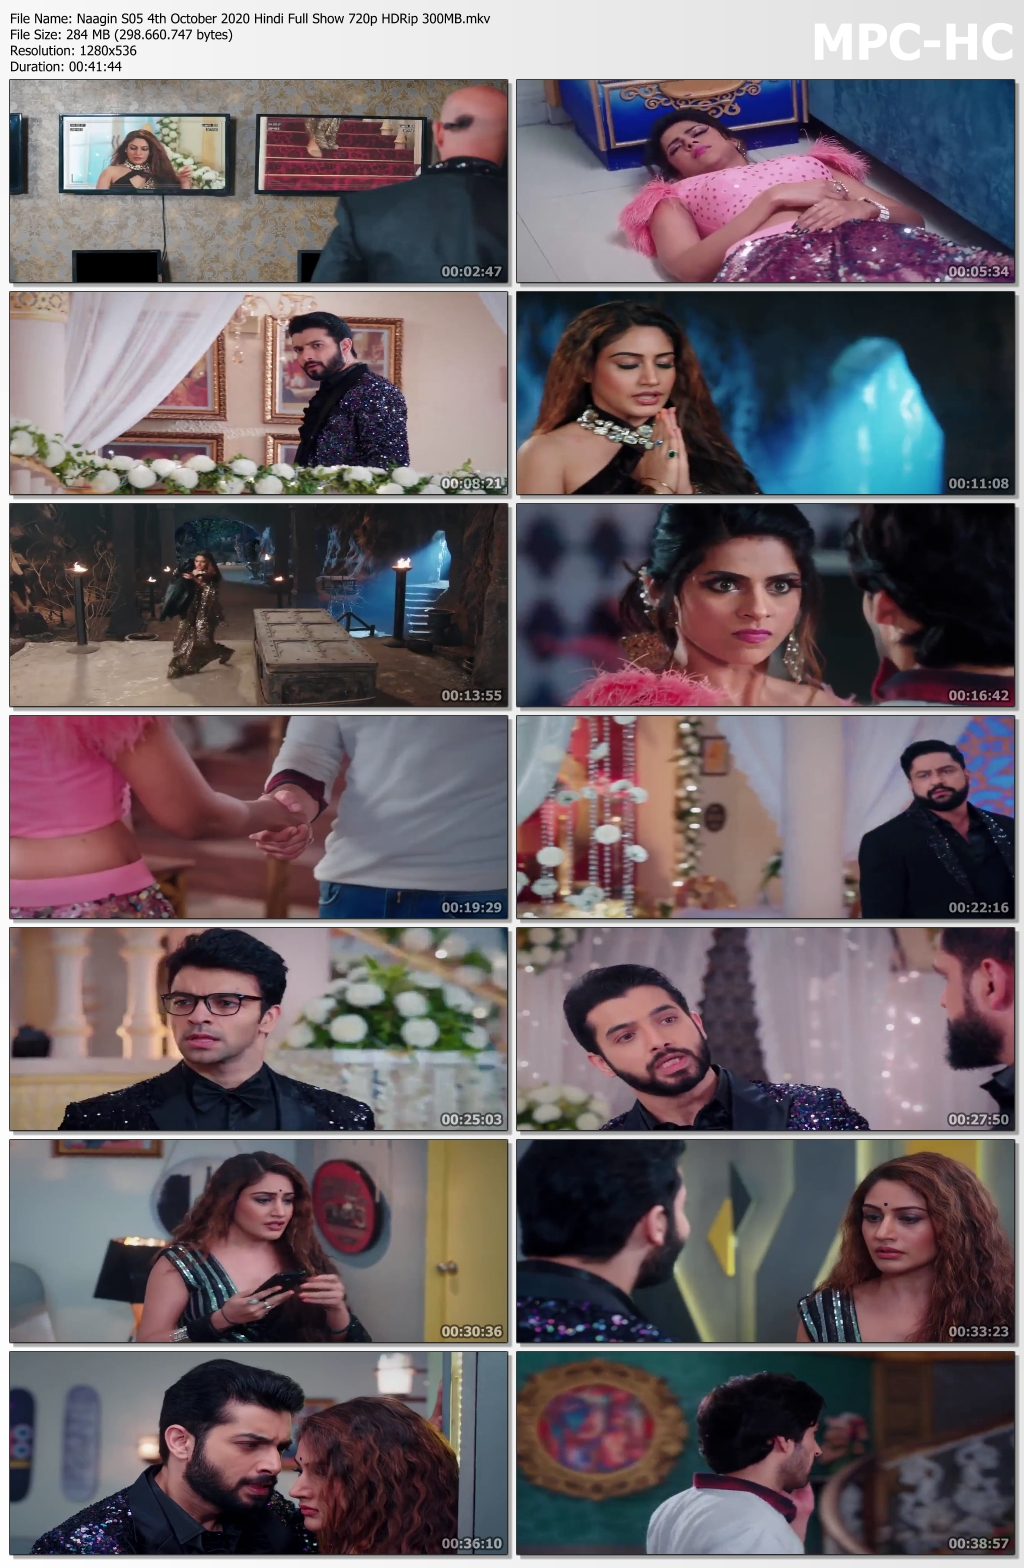 Naagin-S05-4th-October-2020-Hindi-Full-Show-720p-HDRip-300-MB-mkv-thumbs